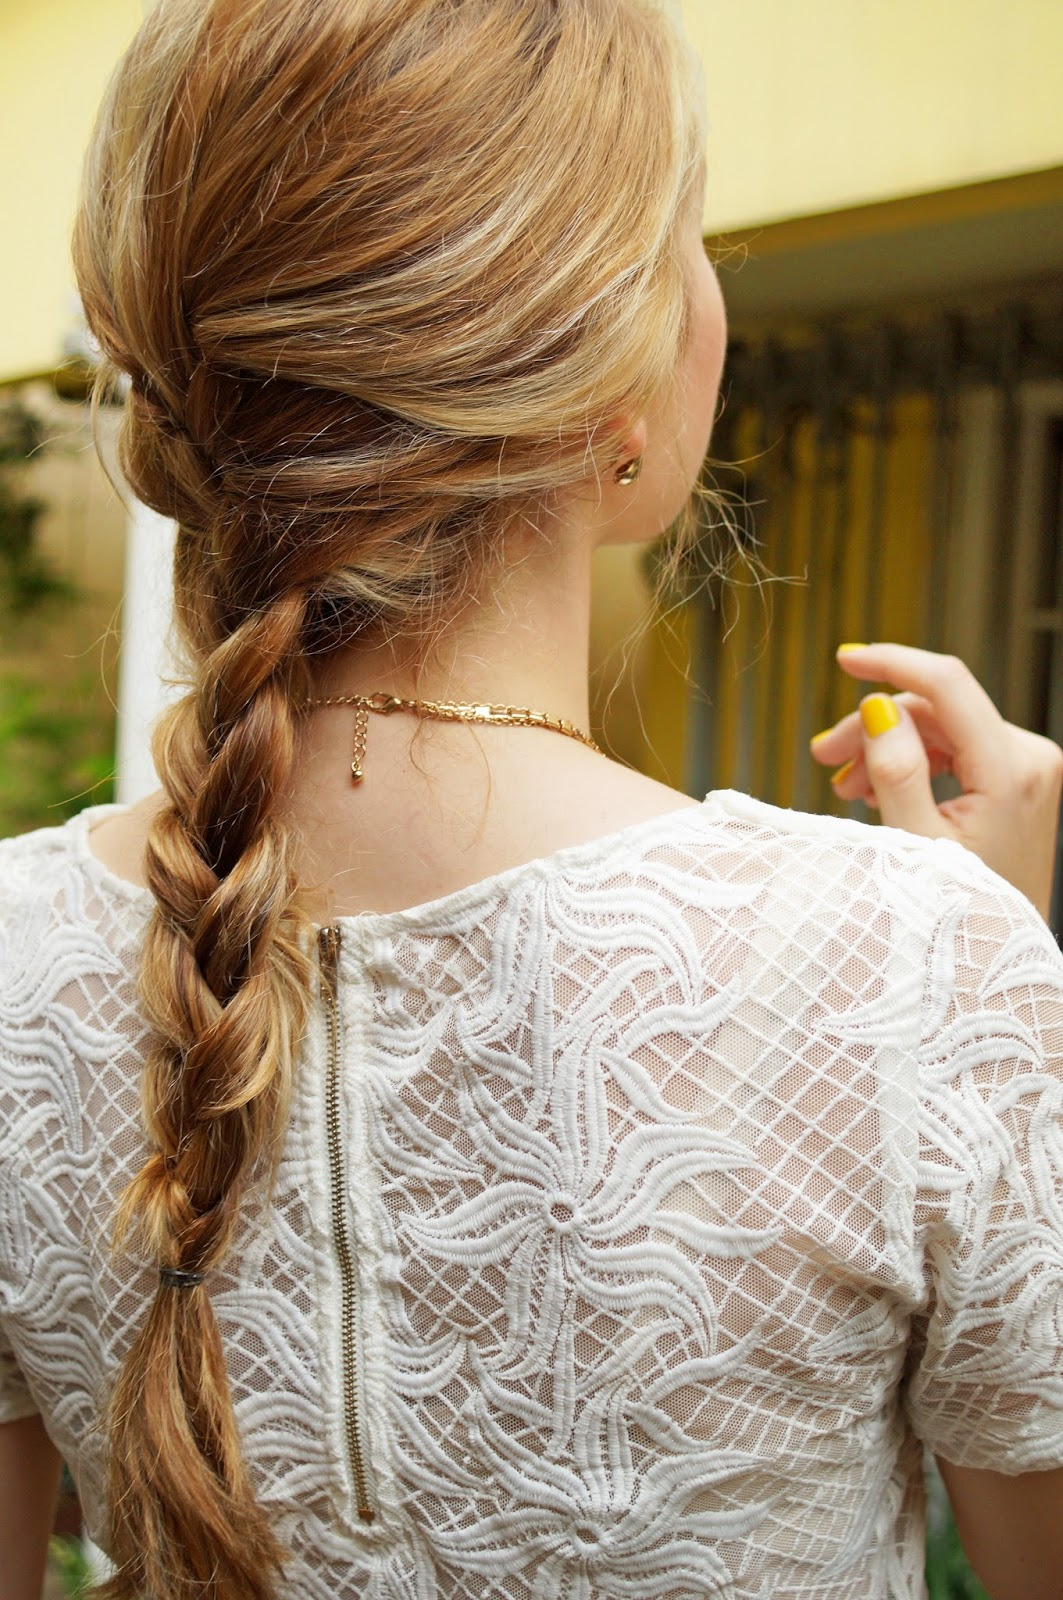 Braid Hairstyles are perfect for Summer!